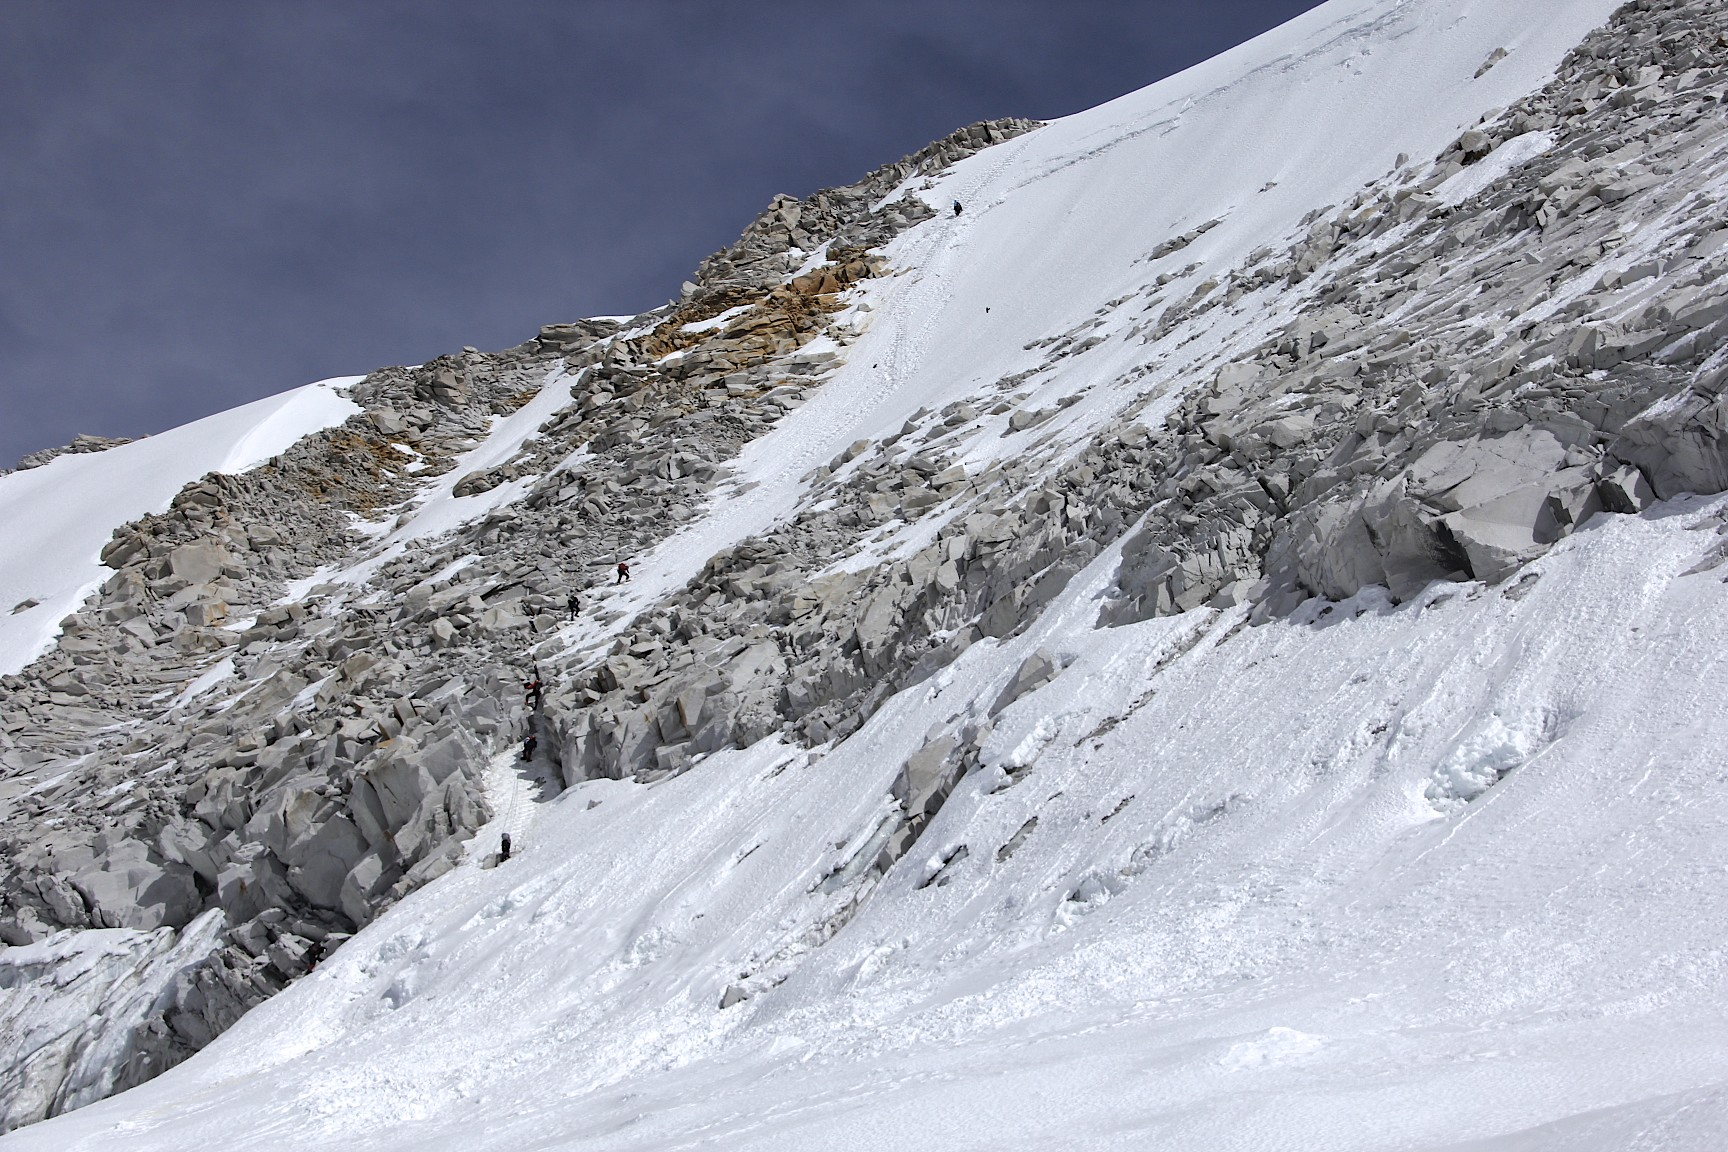 The rocky descent from the West Col from 6,150m to 5,900m